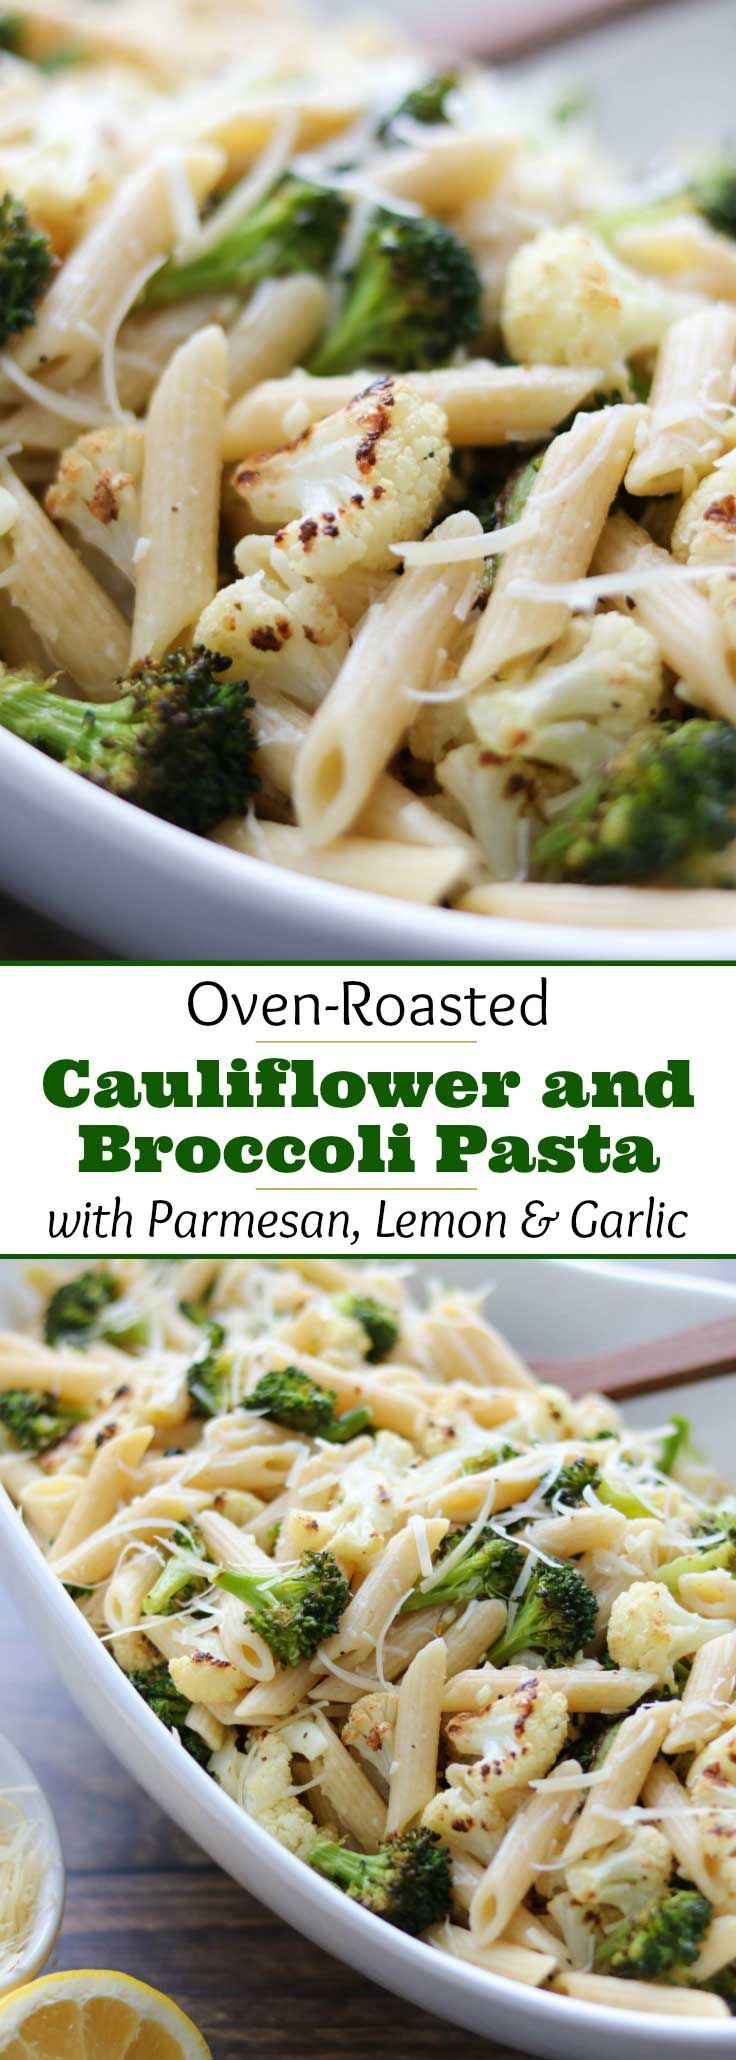 An easy, deeply flavorful pasta recipe featuring roasted cauliflower and broccoli - plus parmesan cheese, garlic and bright lemon juice to round out the salty-umami-tangy symphony of tastes. Deceptive